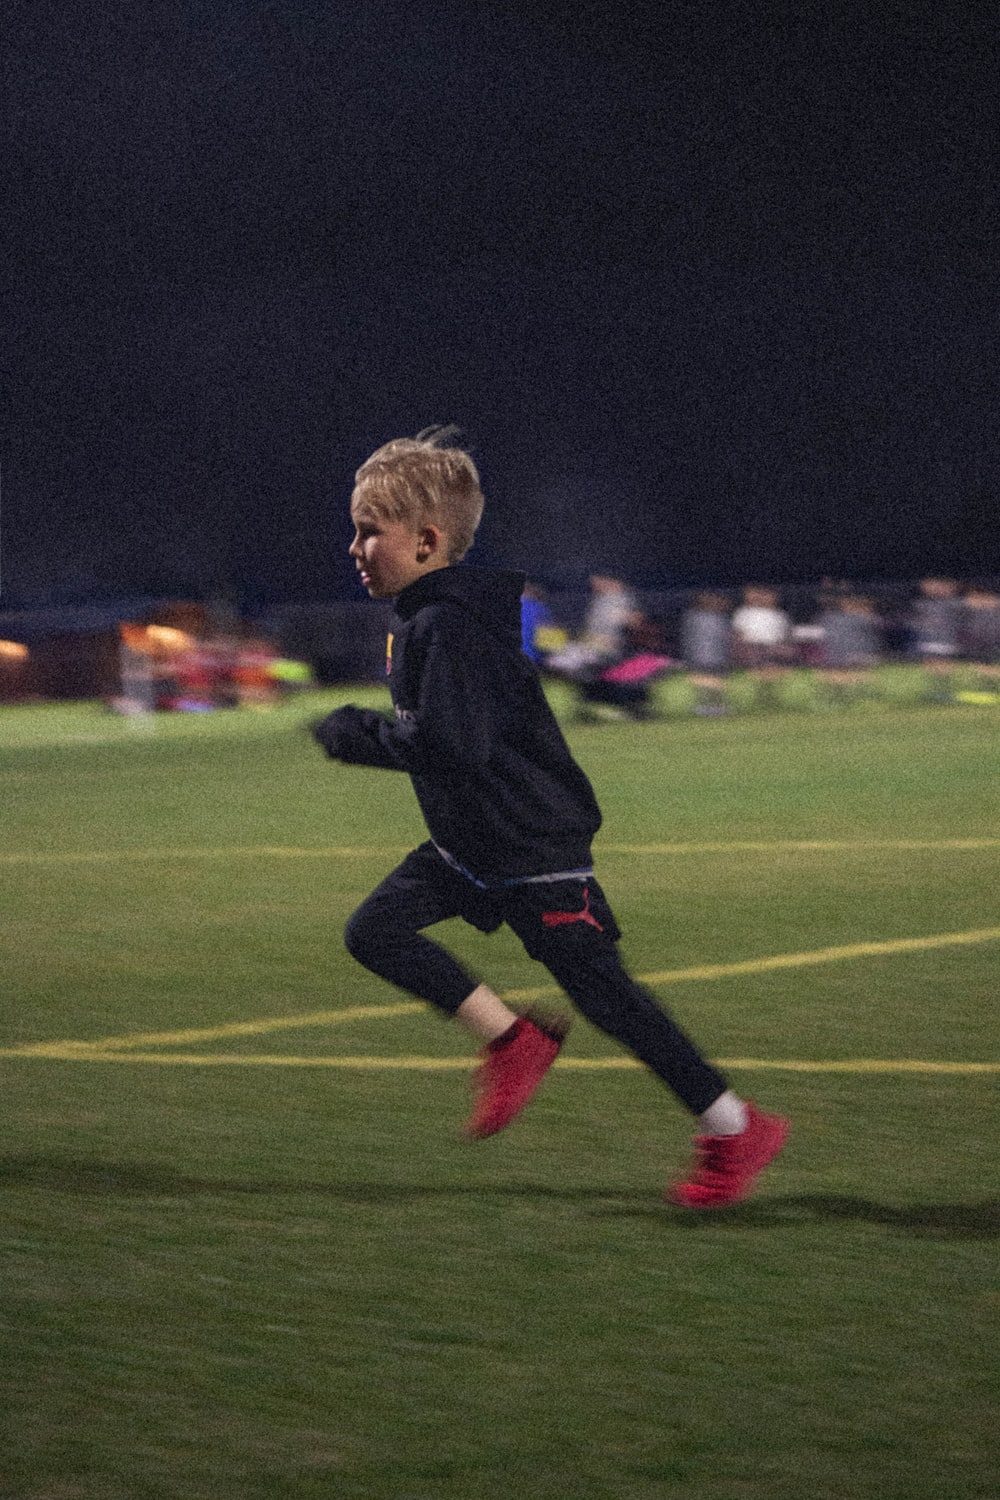 boy in blue long sleeve shirt and black pants running on green grass field during daytime